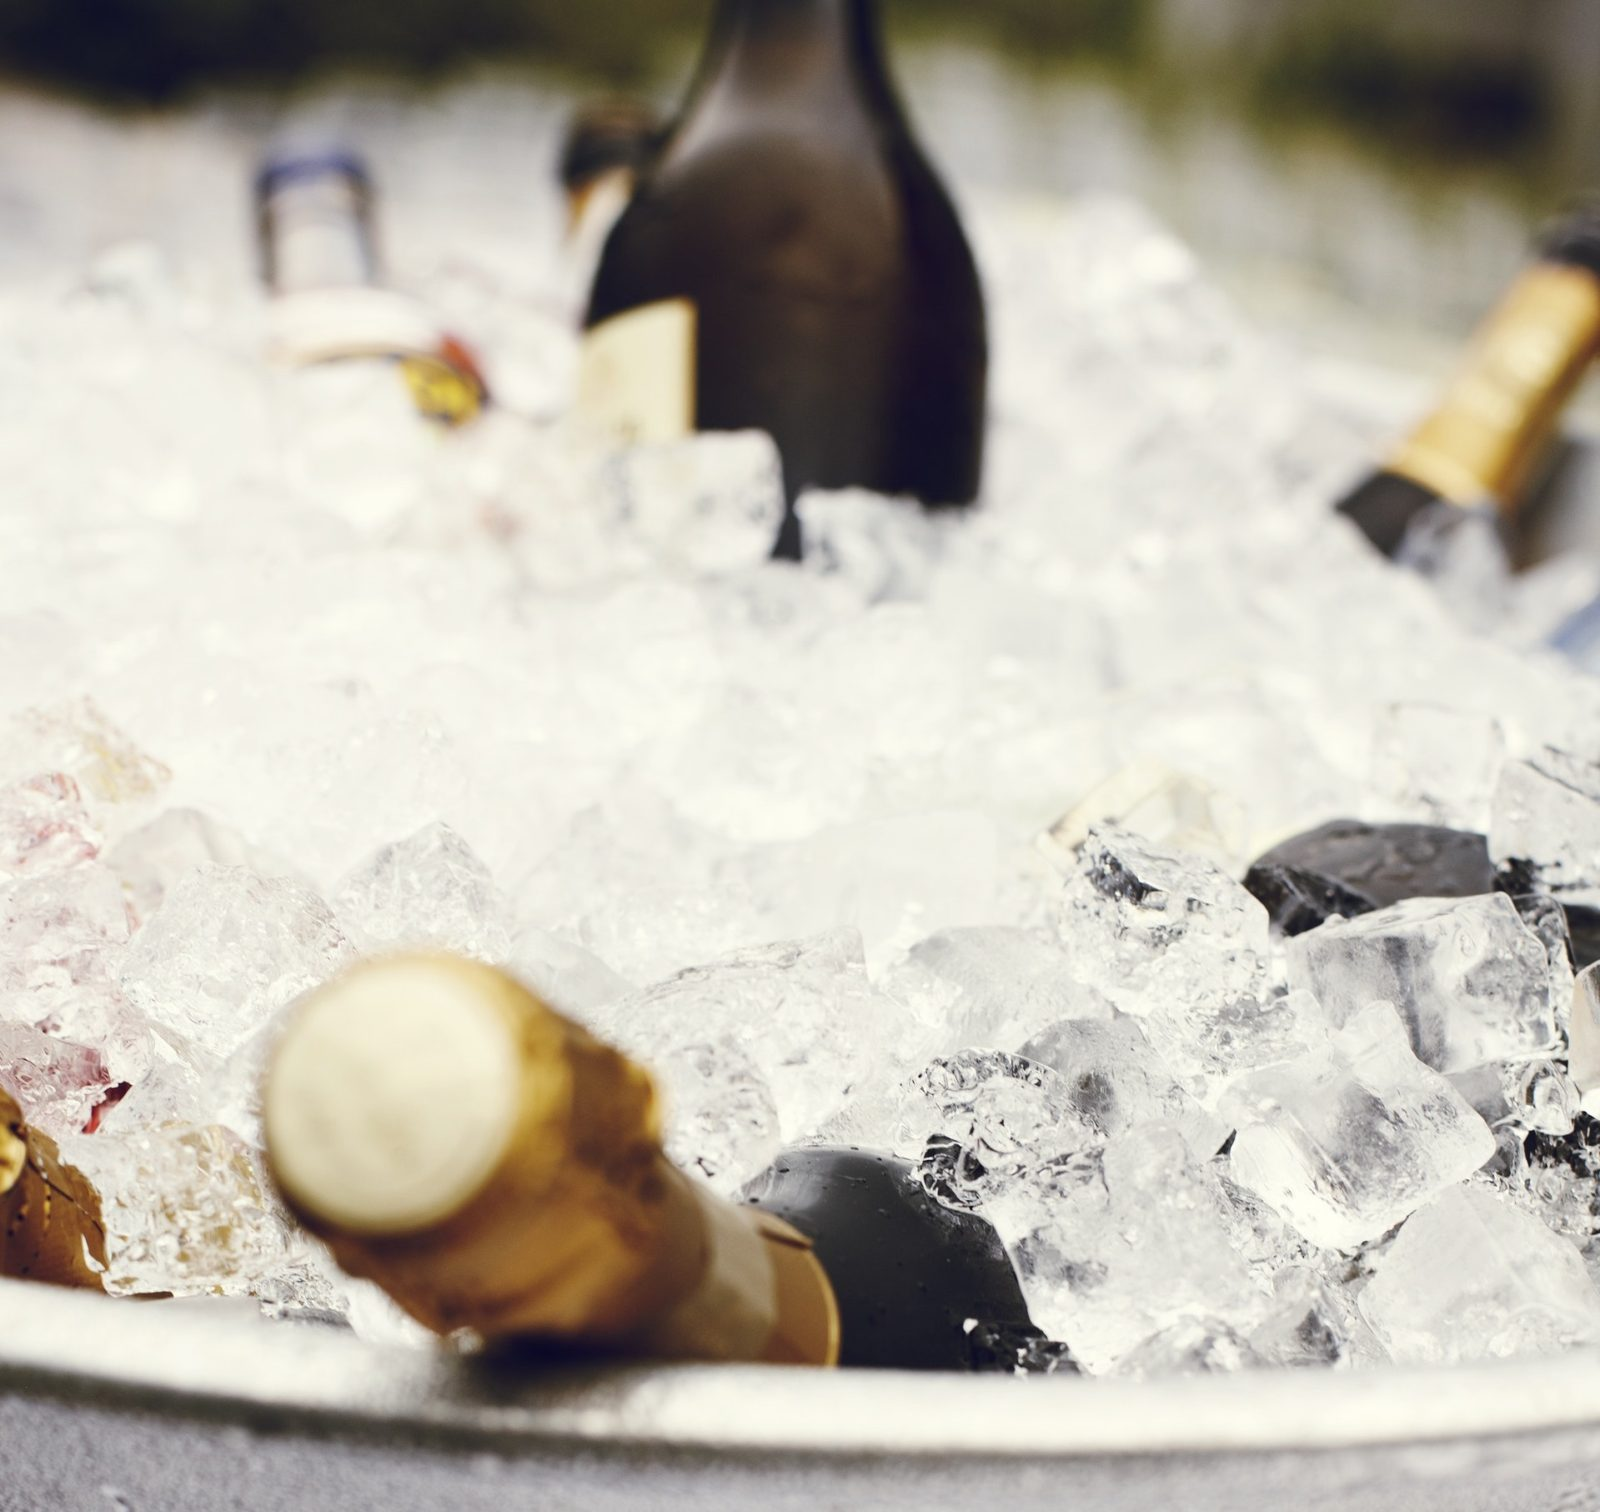 prosecco-bottle-explosion-leaves-woman-with-$3,000-car-cleaning-bill